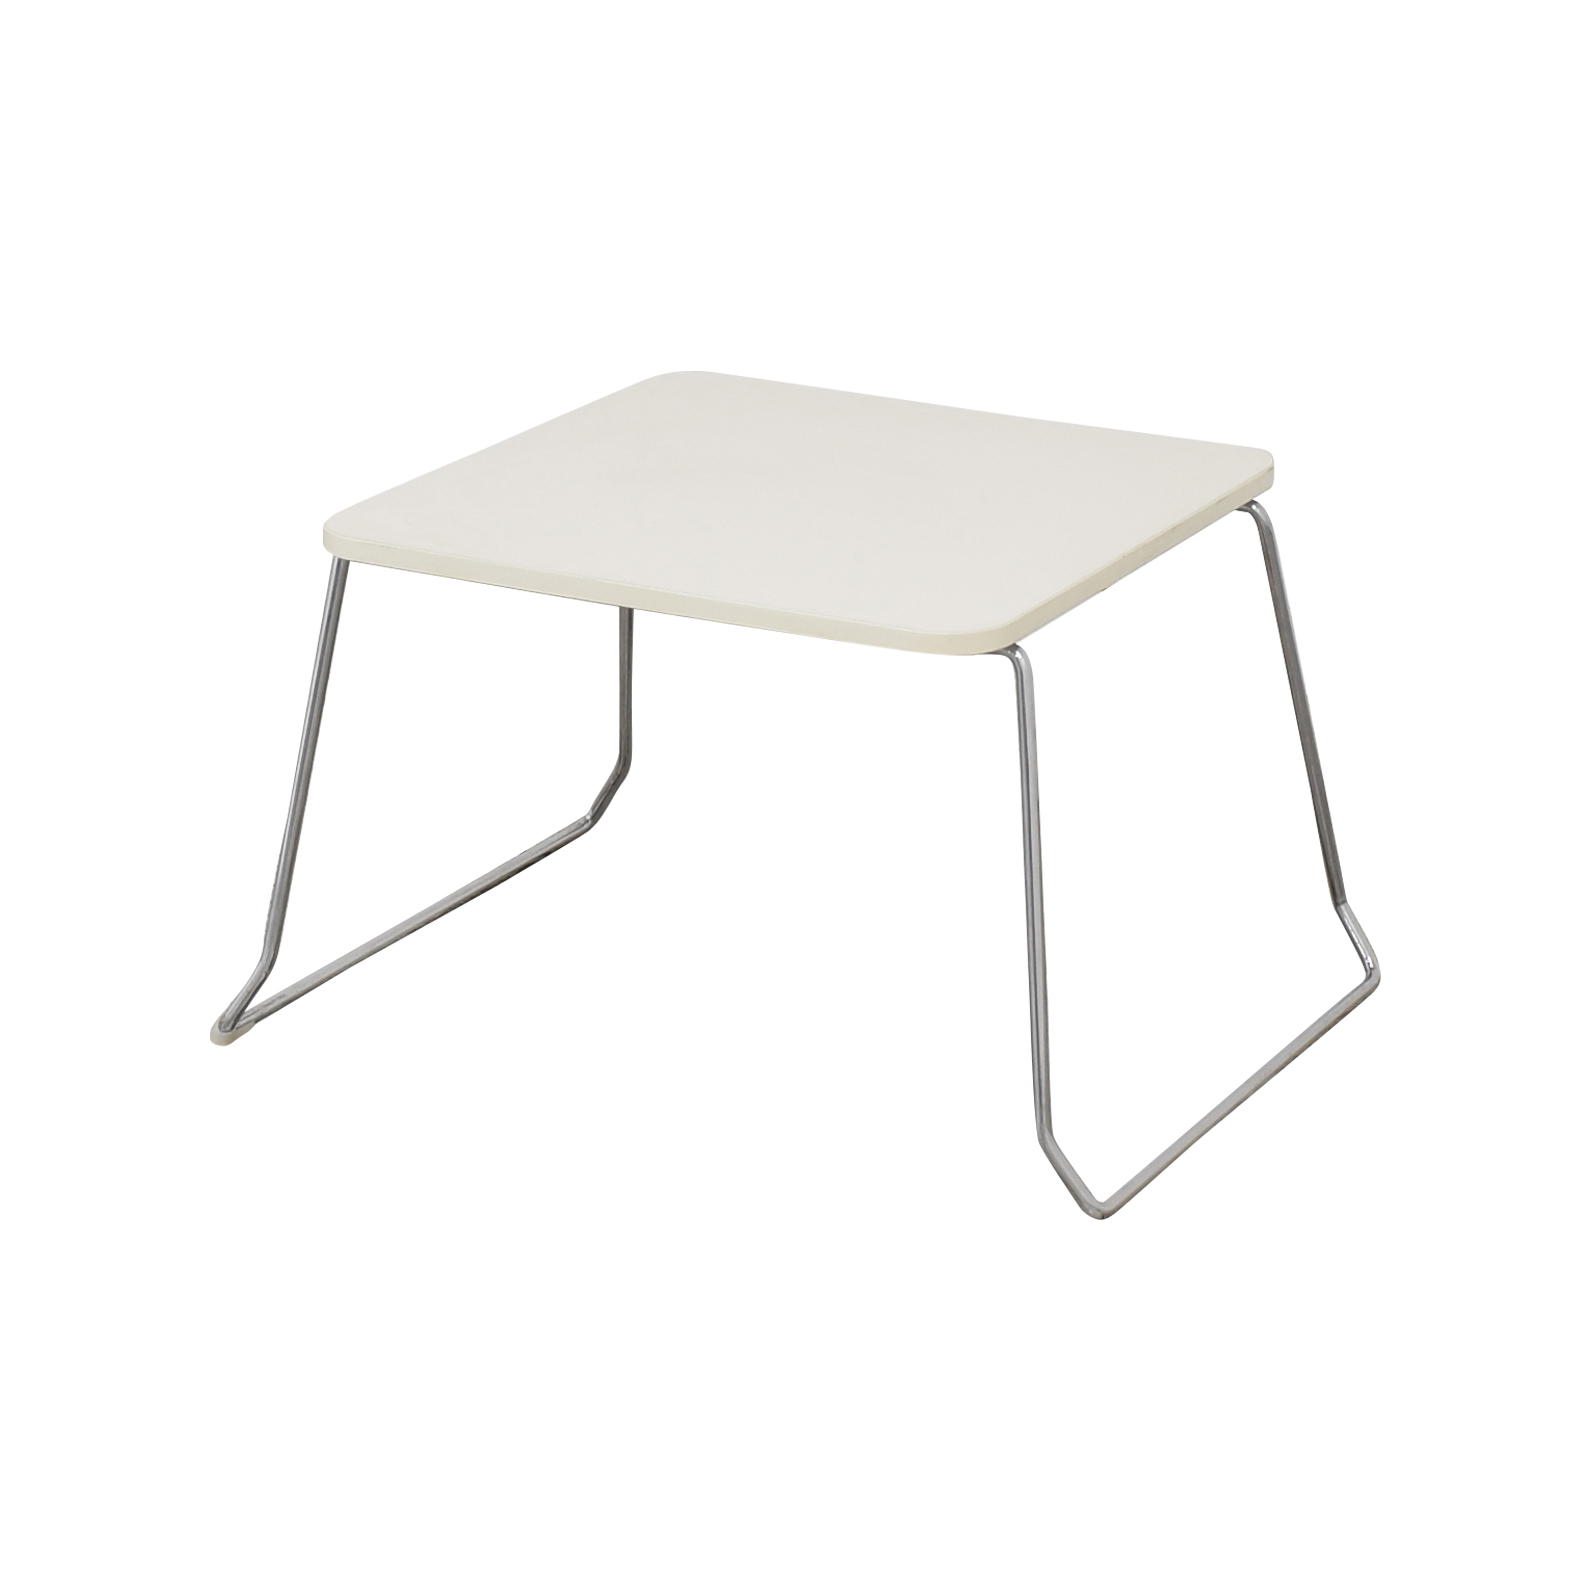 Koleksiyon Koleksiyon Asansa End Table pa